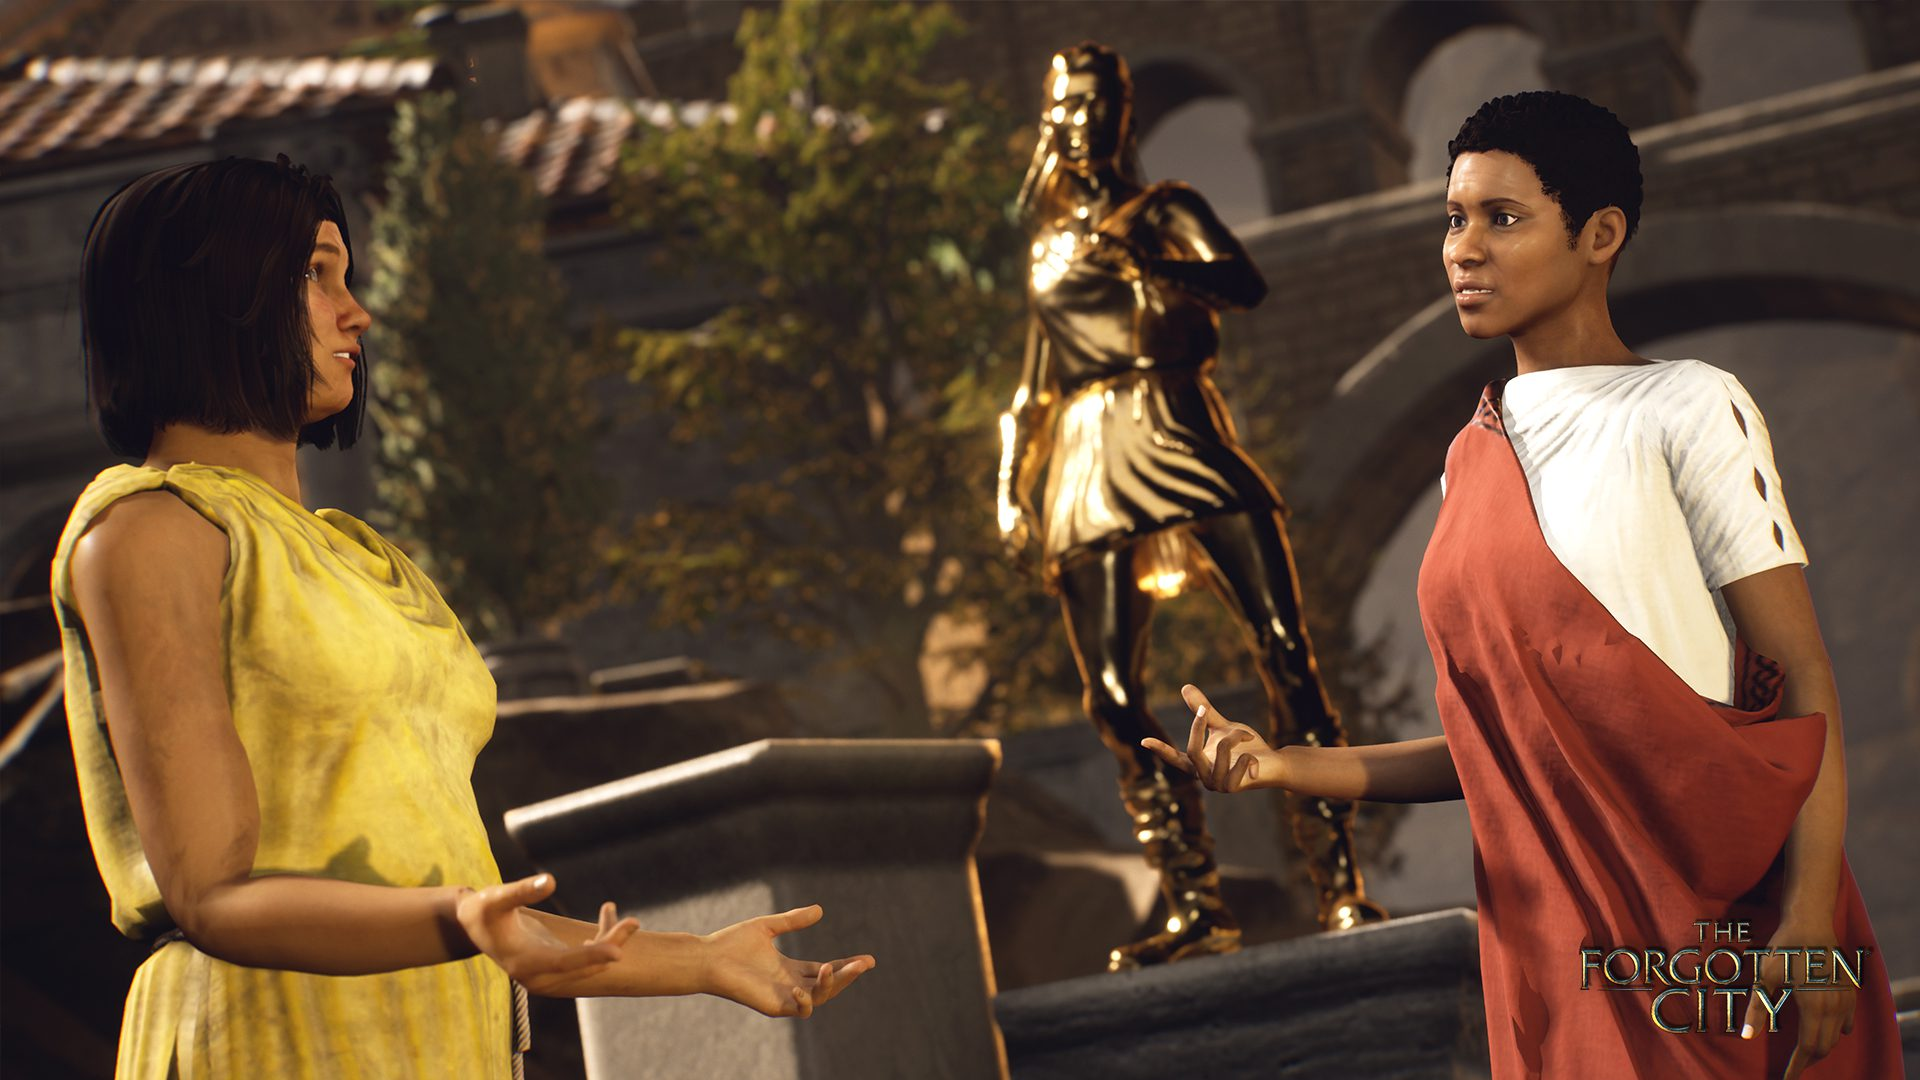 Two characters in Roman dress stand talking in front of a golden statue of a woman who looks to be in pain.